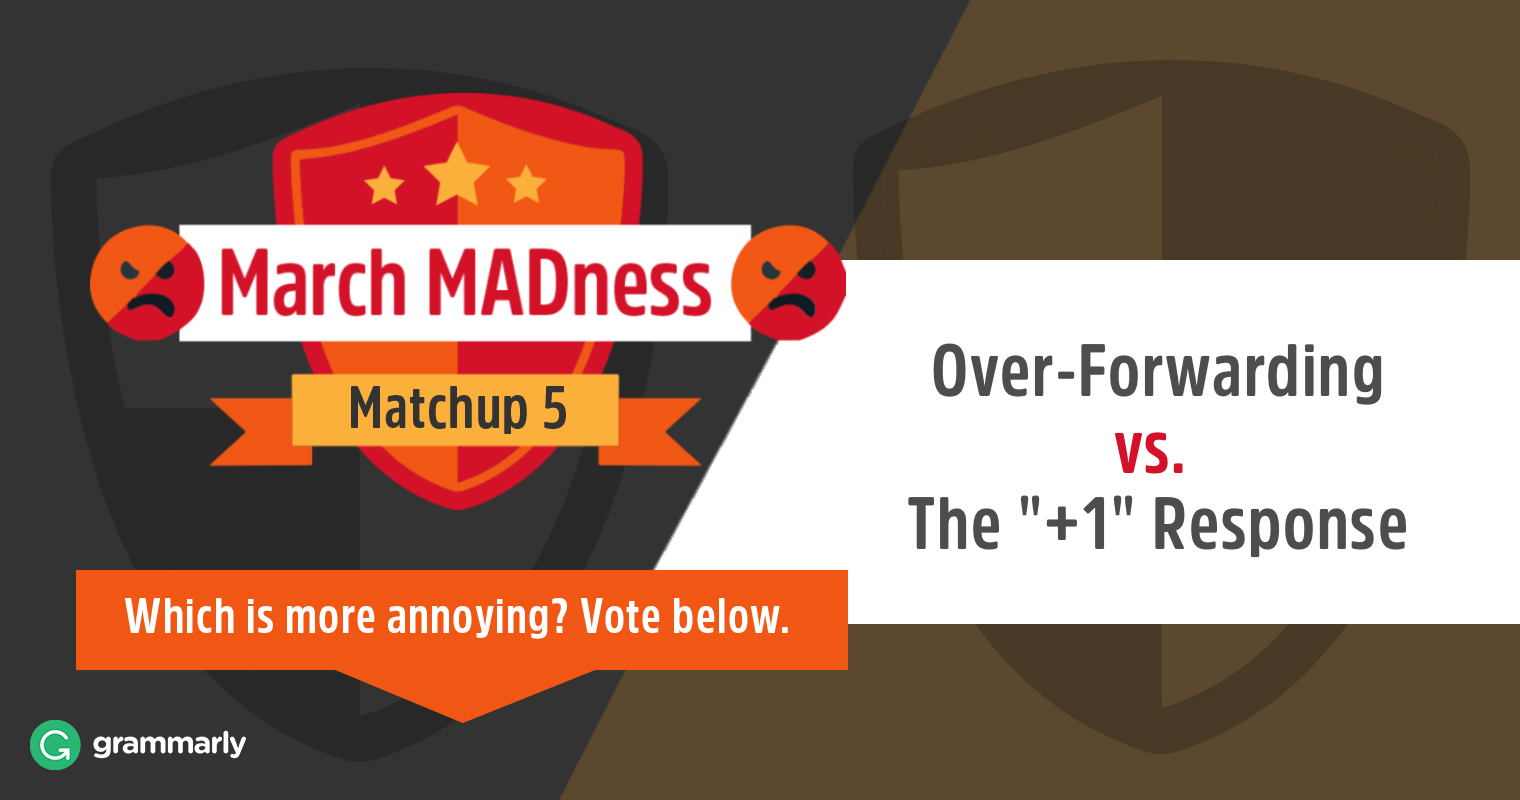 March MADness: Over-Forwarding vs. The